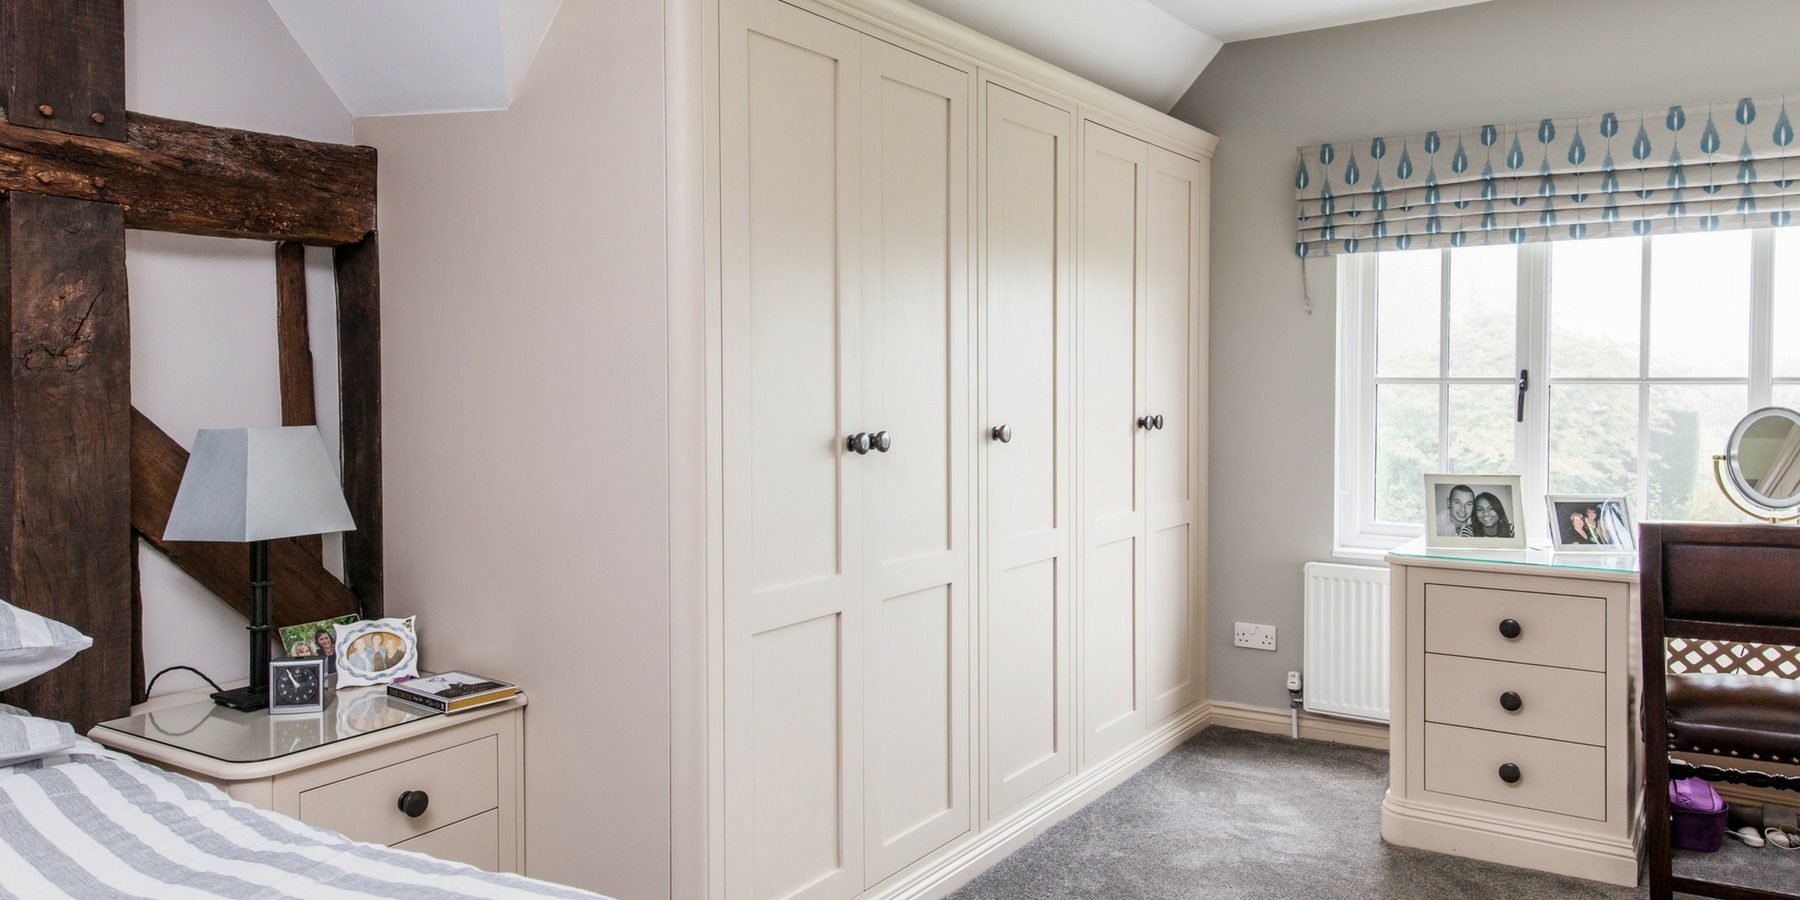 Burlanes Interiors - Bespoke, handmade fitted wardrobes and bedroom furniture